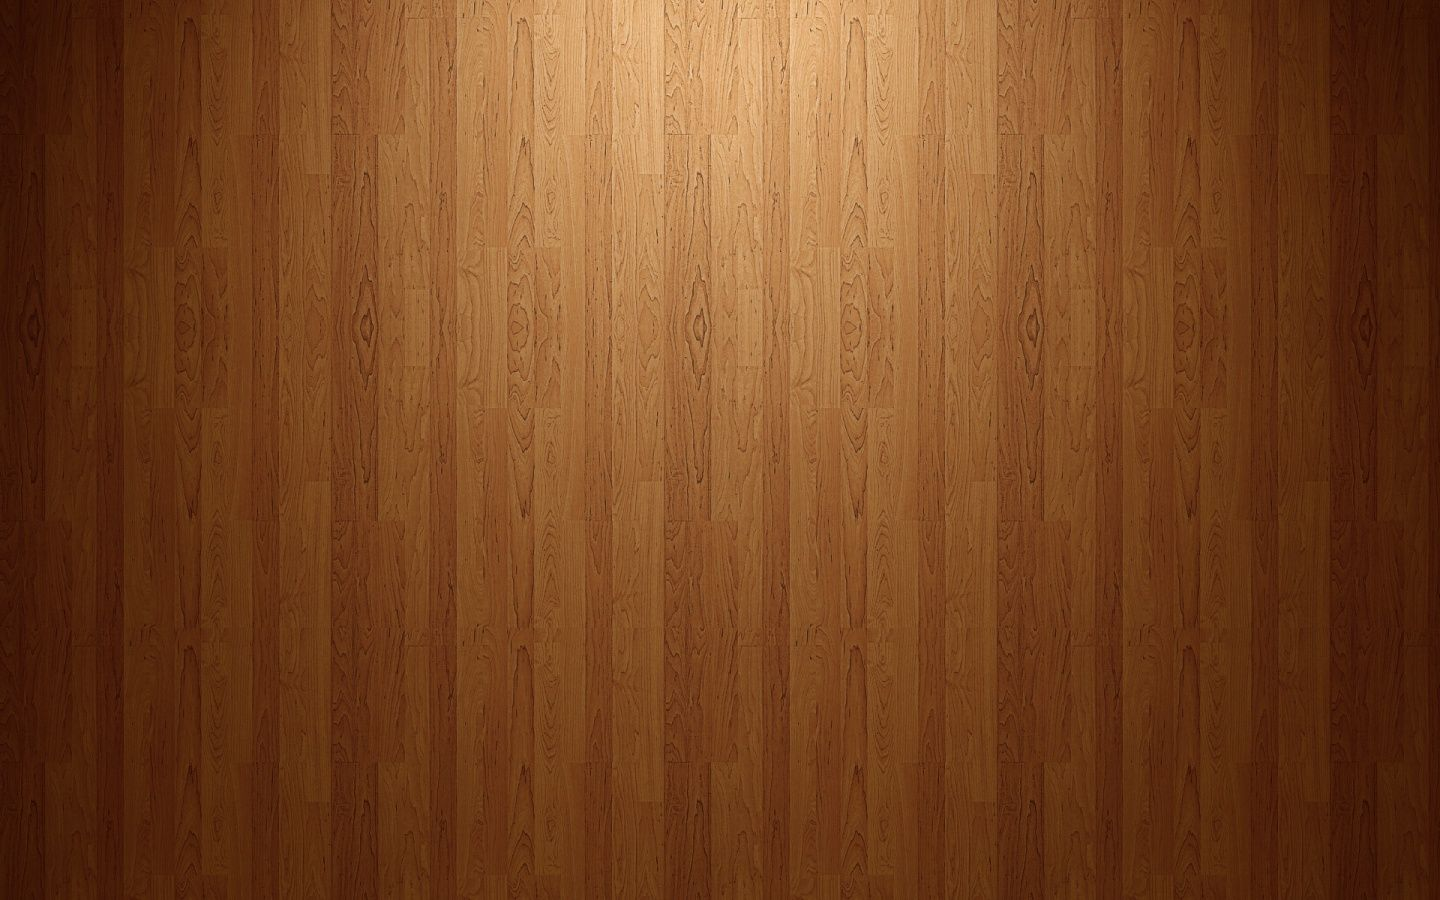 TechCredo-Wood-Texture-Collection-for-Android-×-wallpaper-wpc9009691